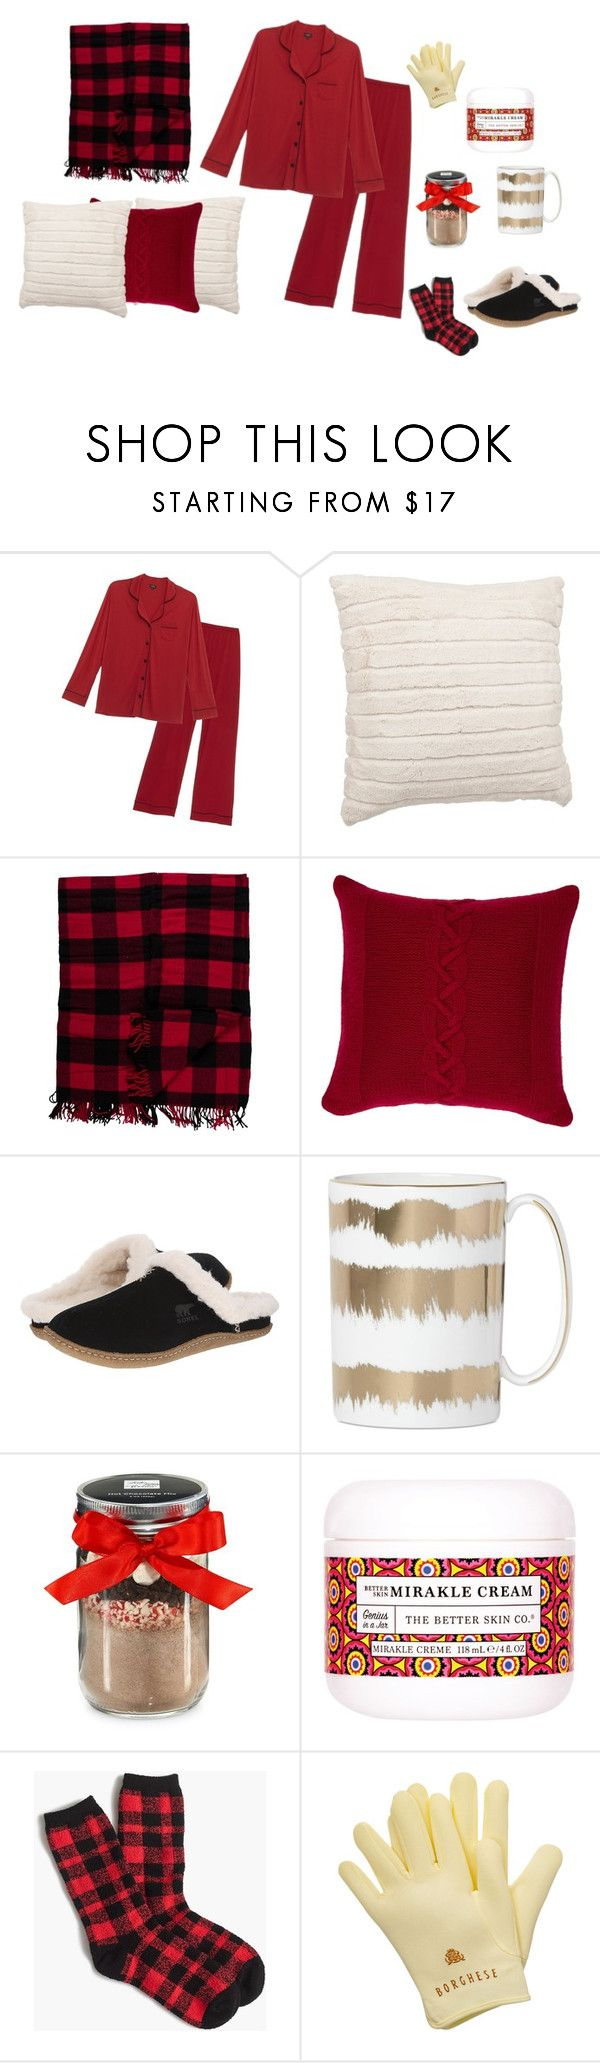 """Cozy in the Snow"" by jenniach on Polyvore featuring Cosabella, Pendleton, Rani Arabella, SOREL, Lenox, The Hampton Popcorn Company, The Better Skin Co., J.Crew, Borghese and plus size clothing"